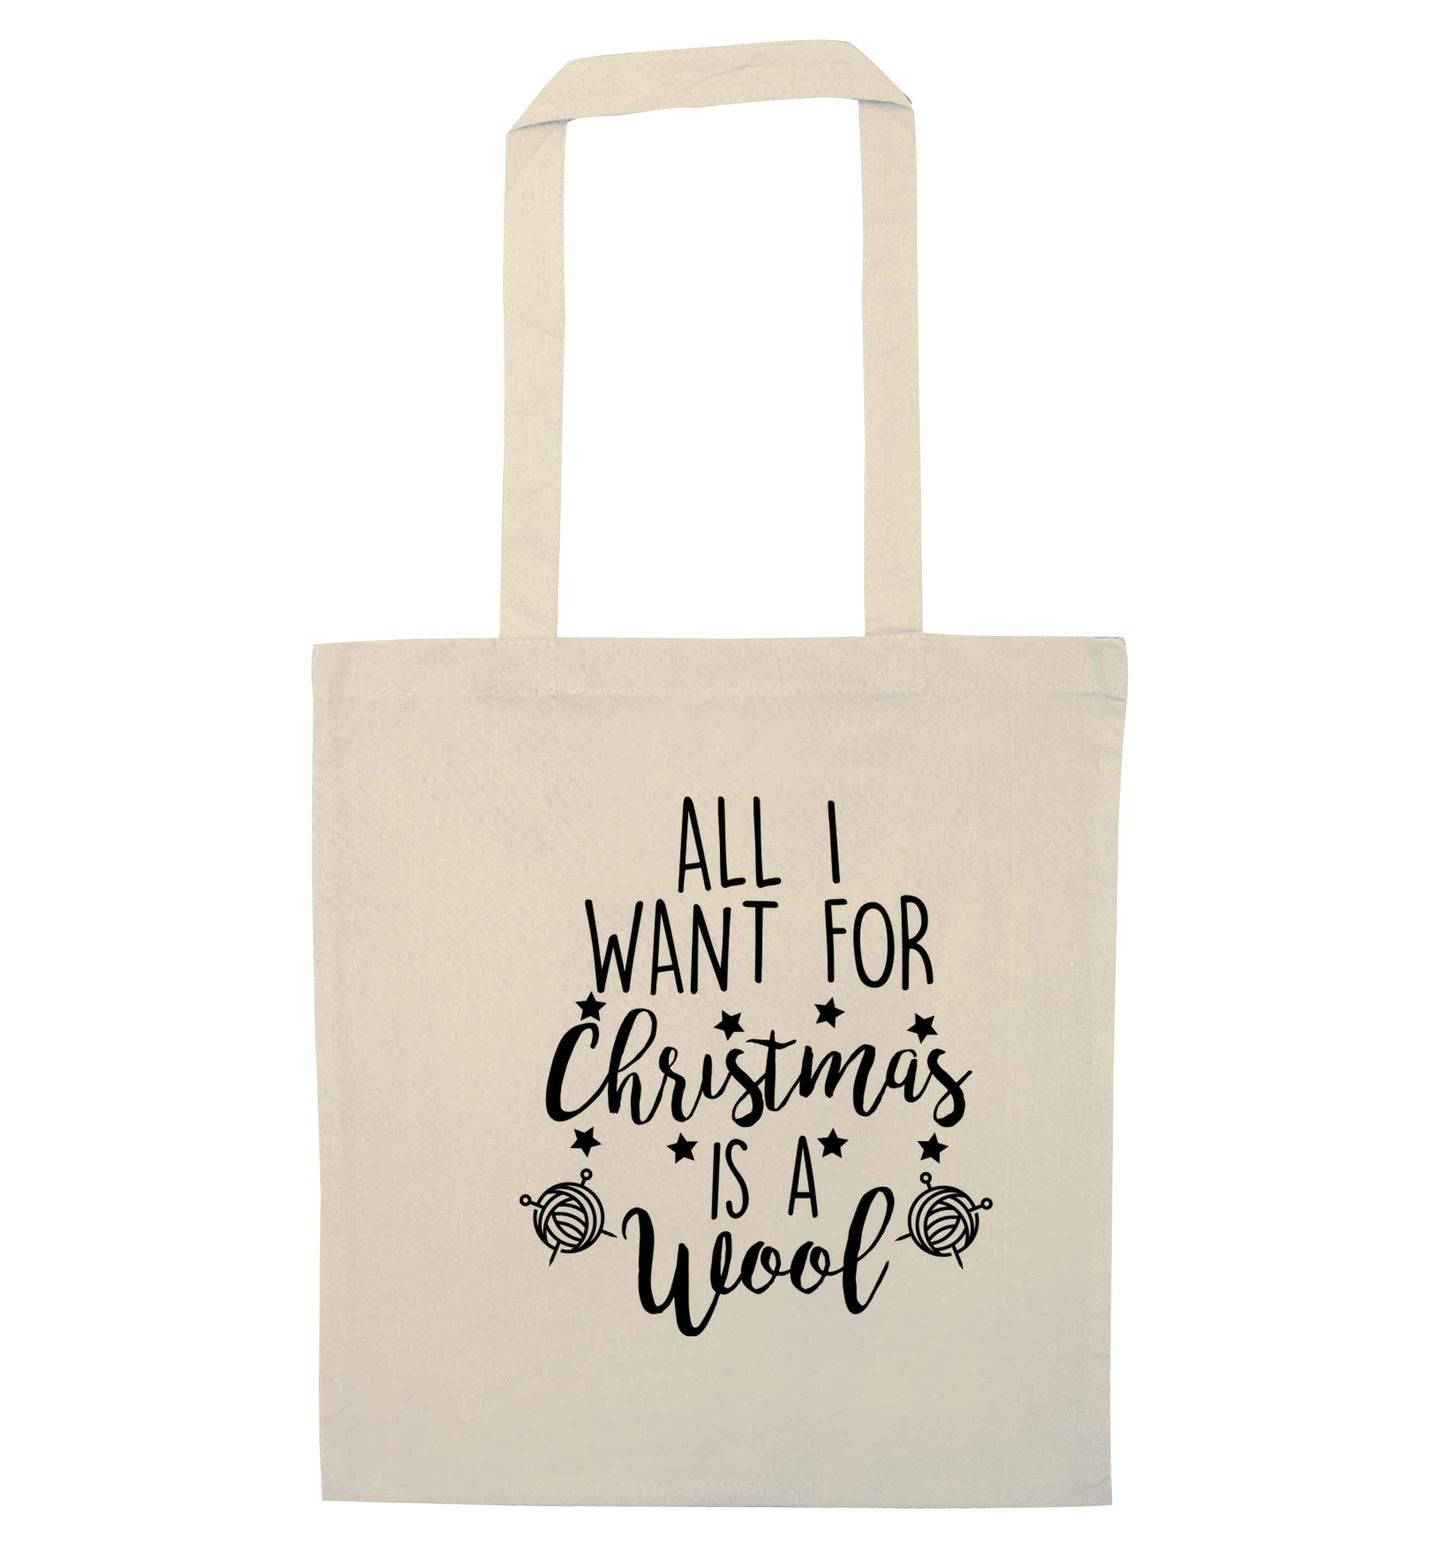 All I want for Christmas is wool! natural tote bag